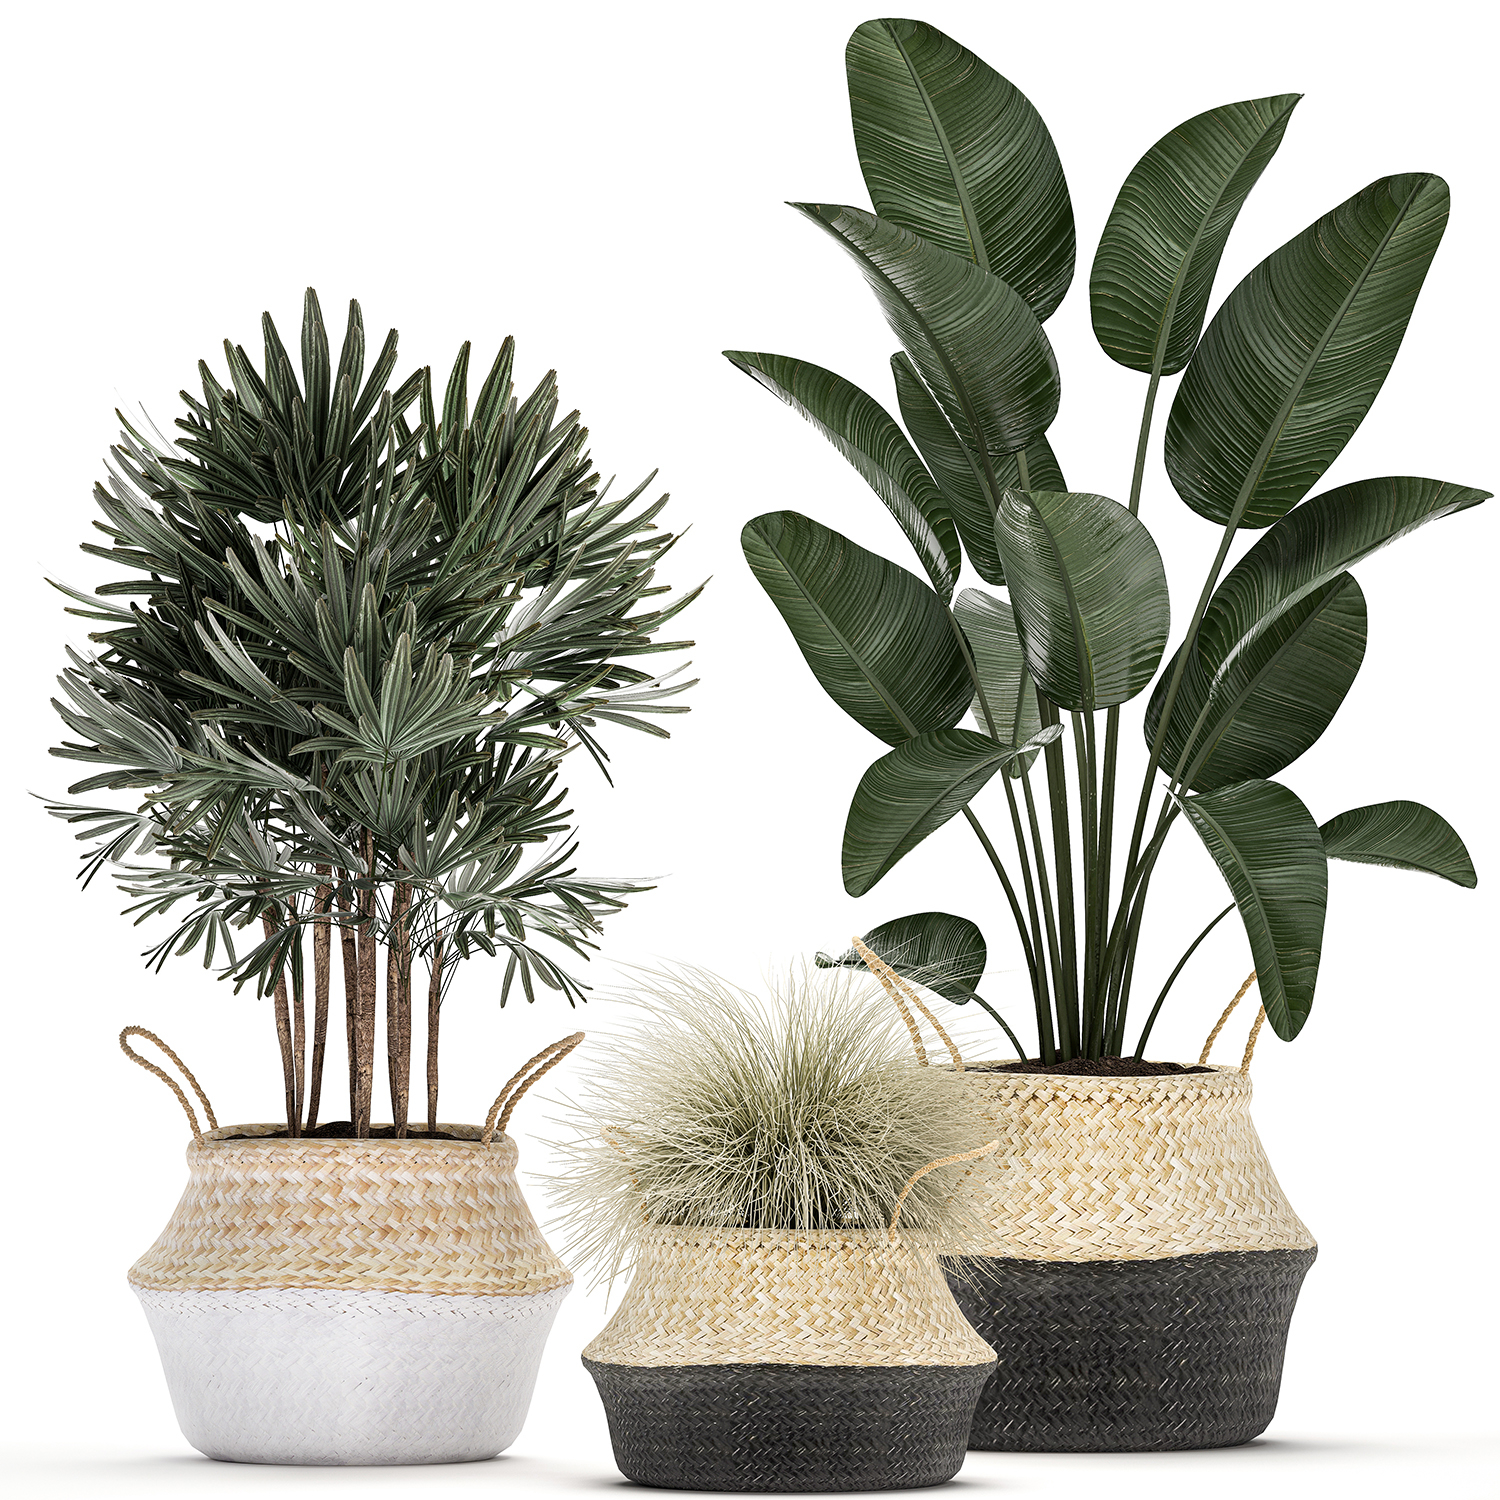 Decorative Plants Interior Potted 3d Model Turbosquid 1536610